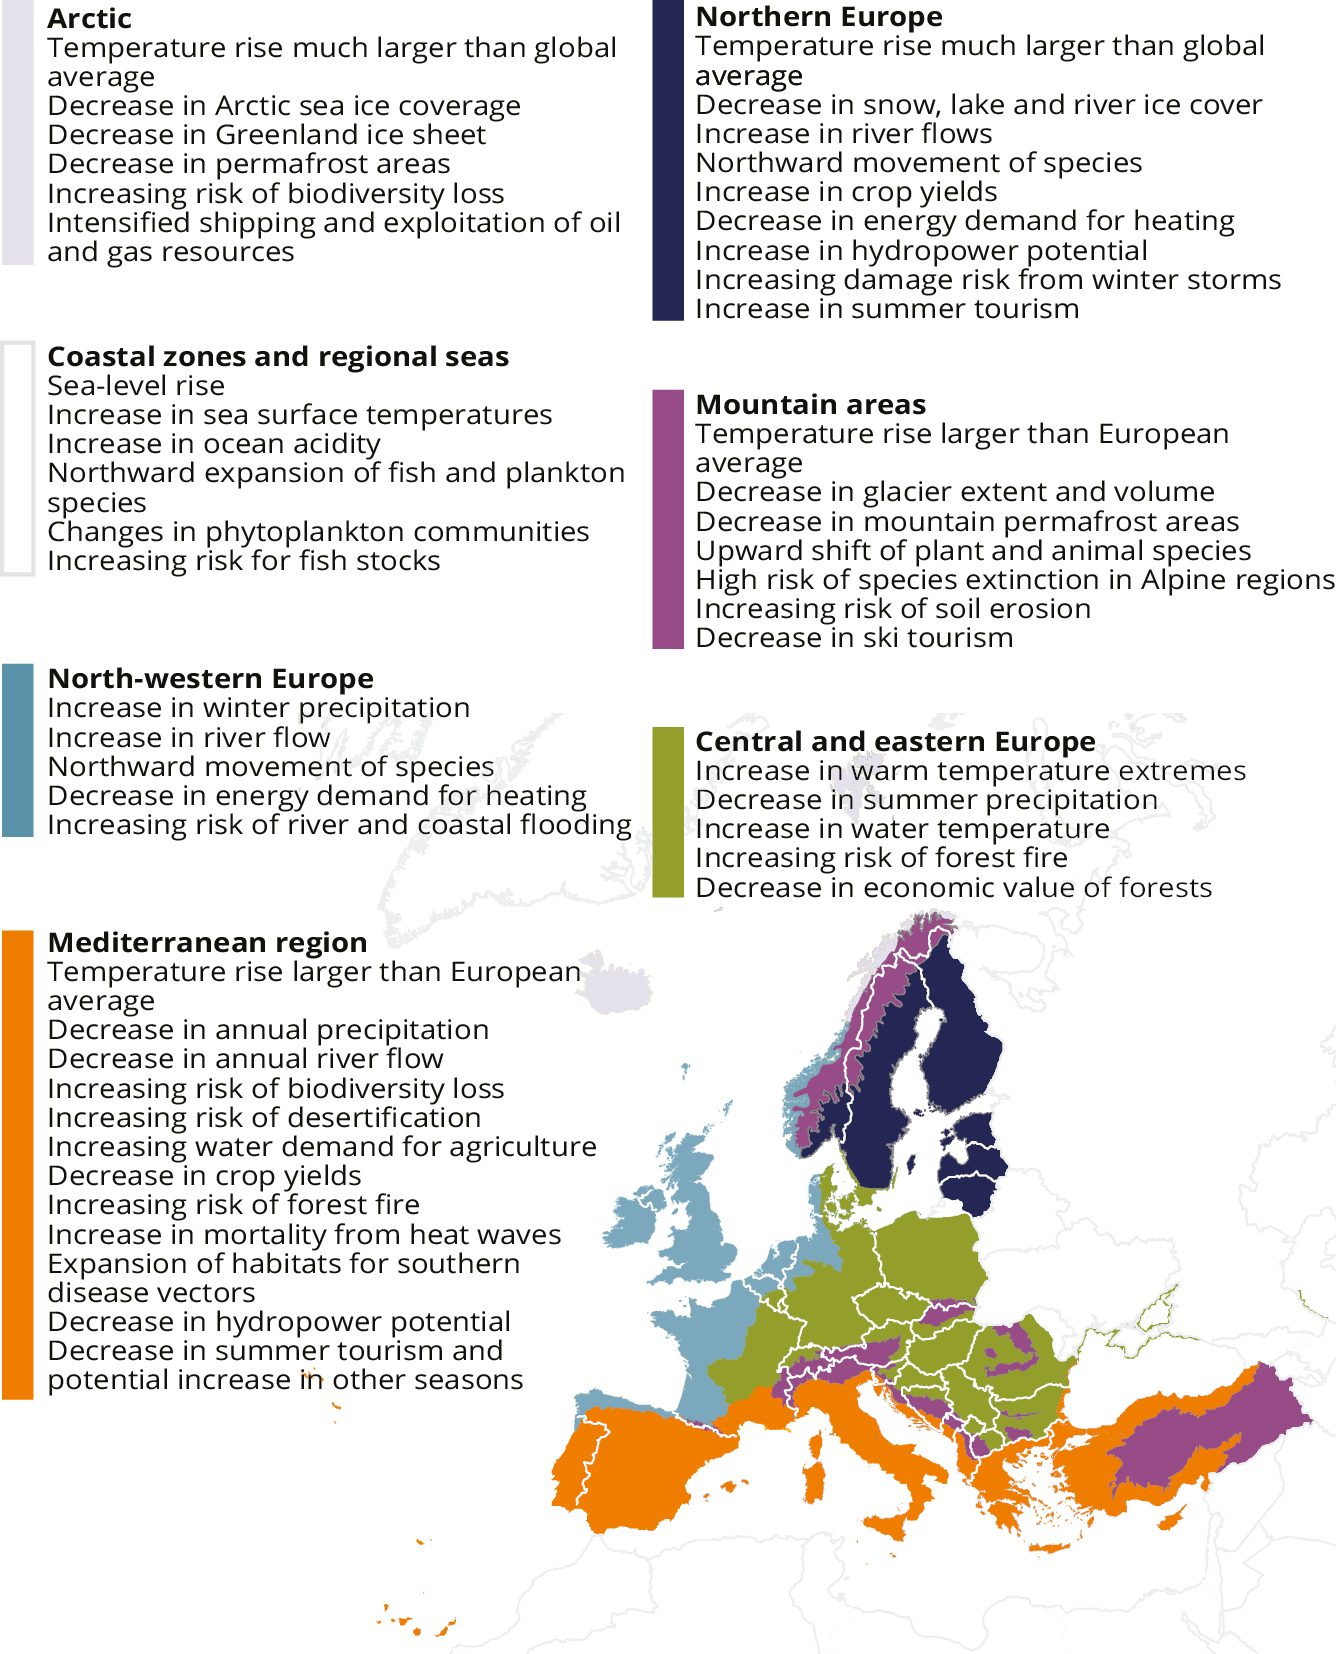 3 protecting conserving and enhancing natural capital european map 3 6 key observed and projected impacts from climate change for the main regions in europe